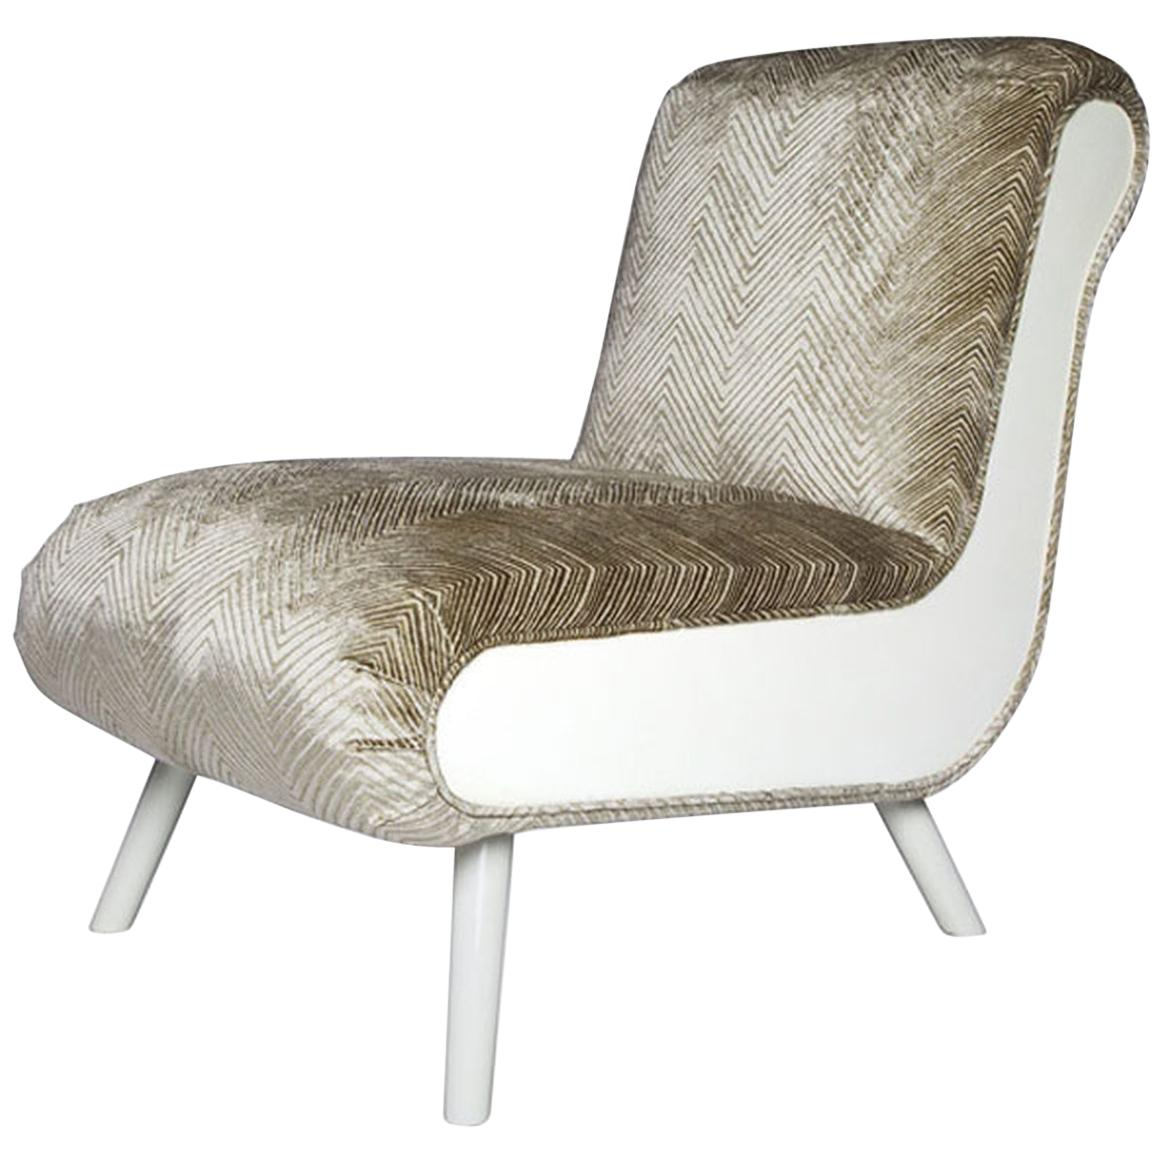 Casablanca Slipper Chair in White Wood and Silver by Innova Luxuxy Group